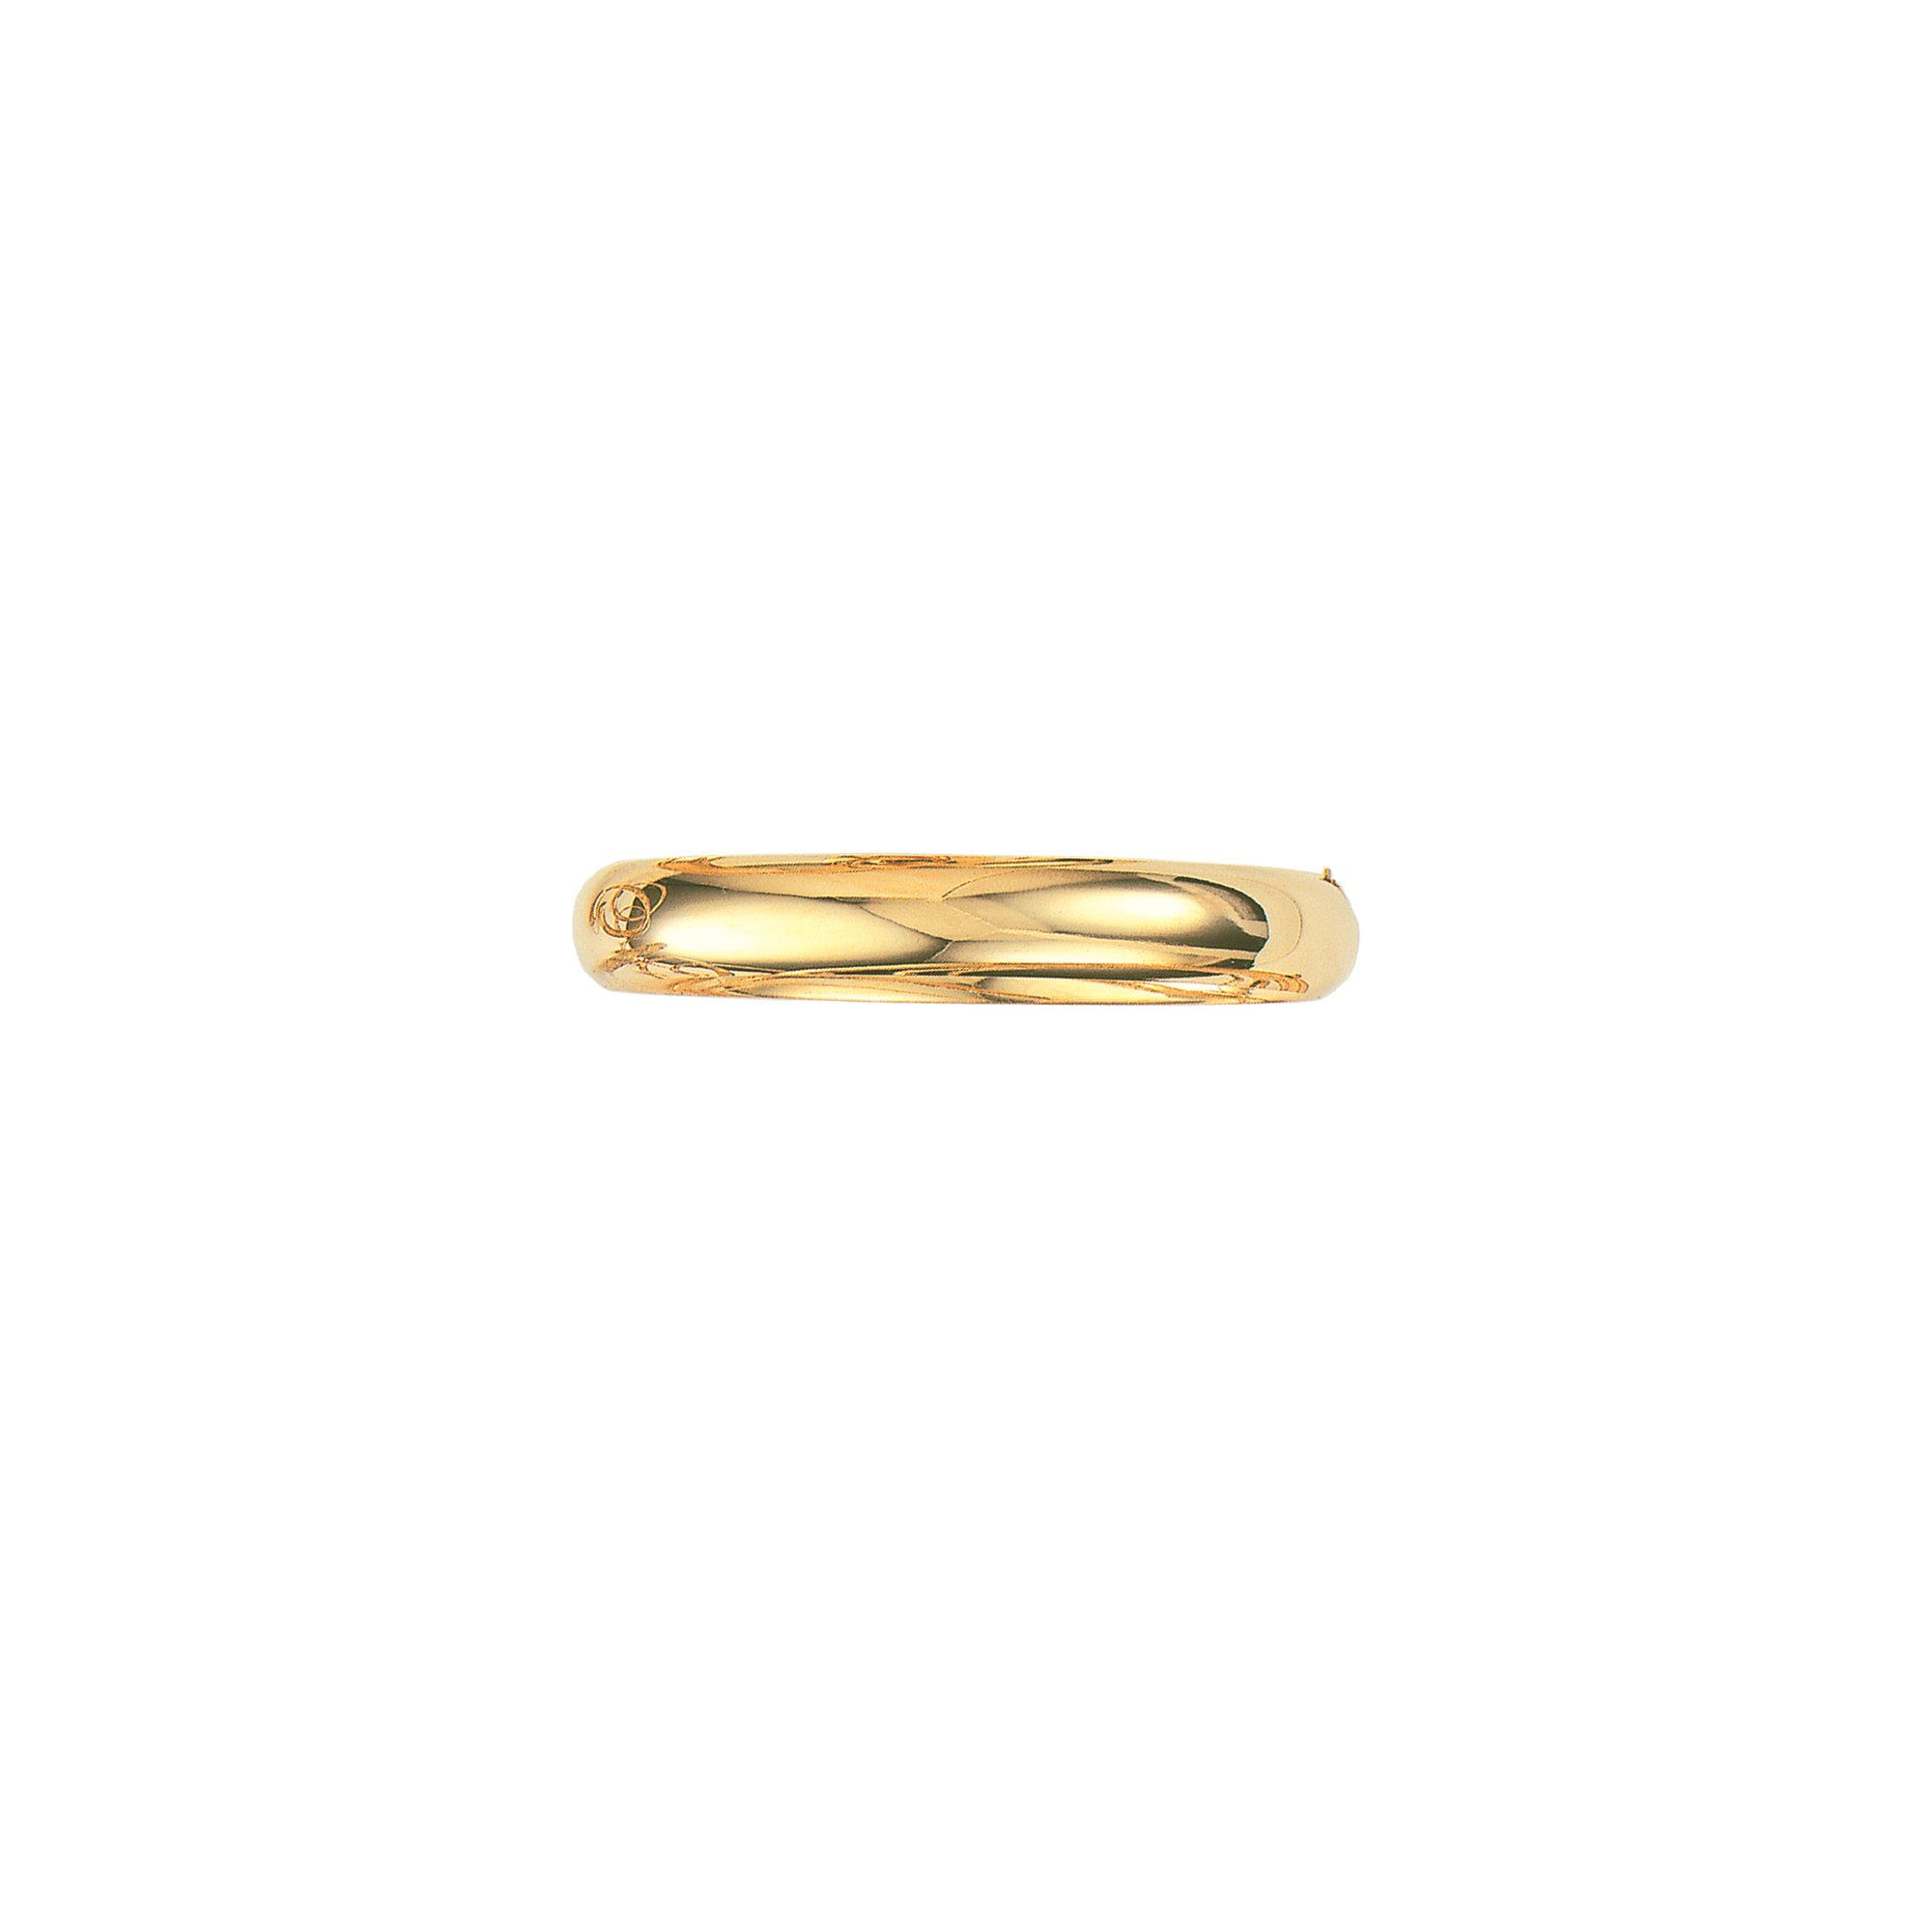 14K Yellow Gold Plain Shiny Round Dome Classic 10mm Wide Bangle 8'' Bracelet with Clasp